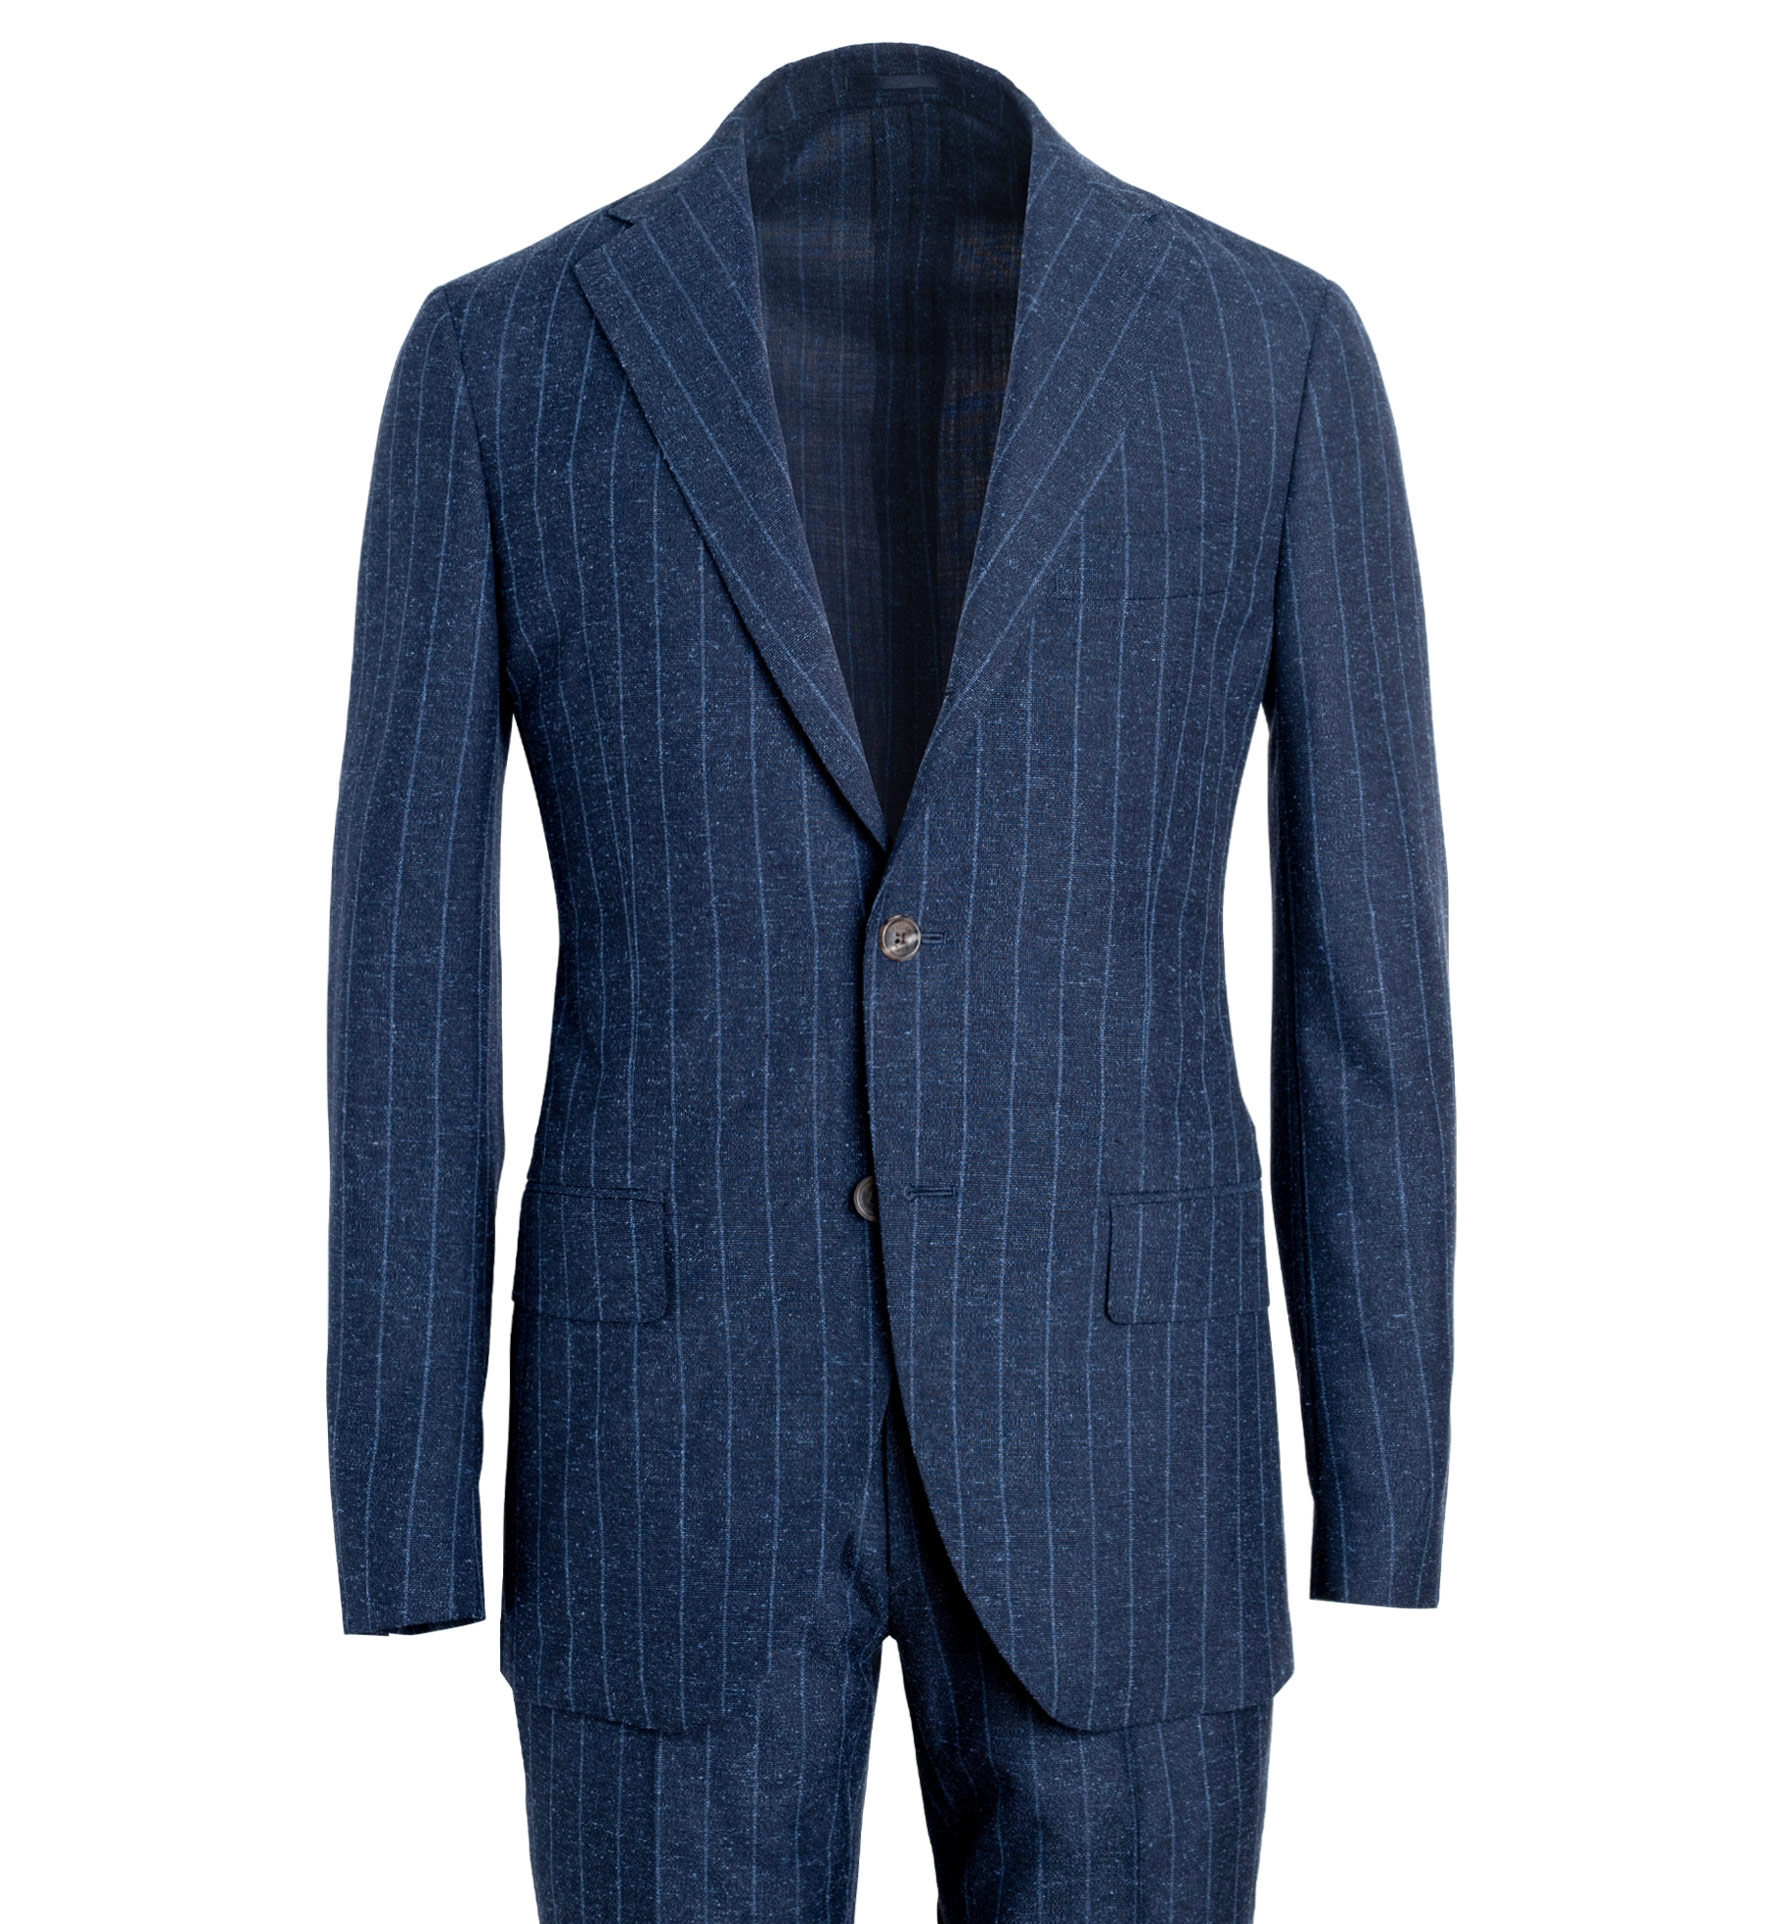 Zoom Image of Bedford Navy Pinstripe Wool and Silk Suit